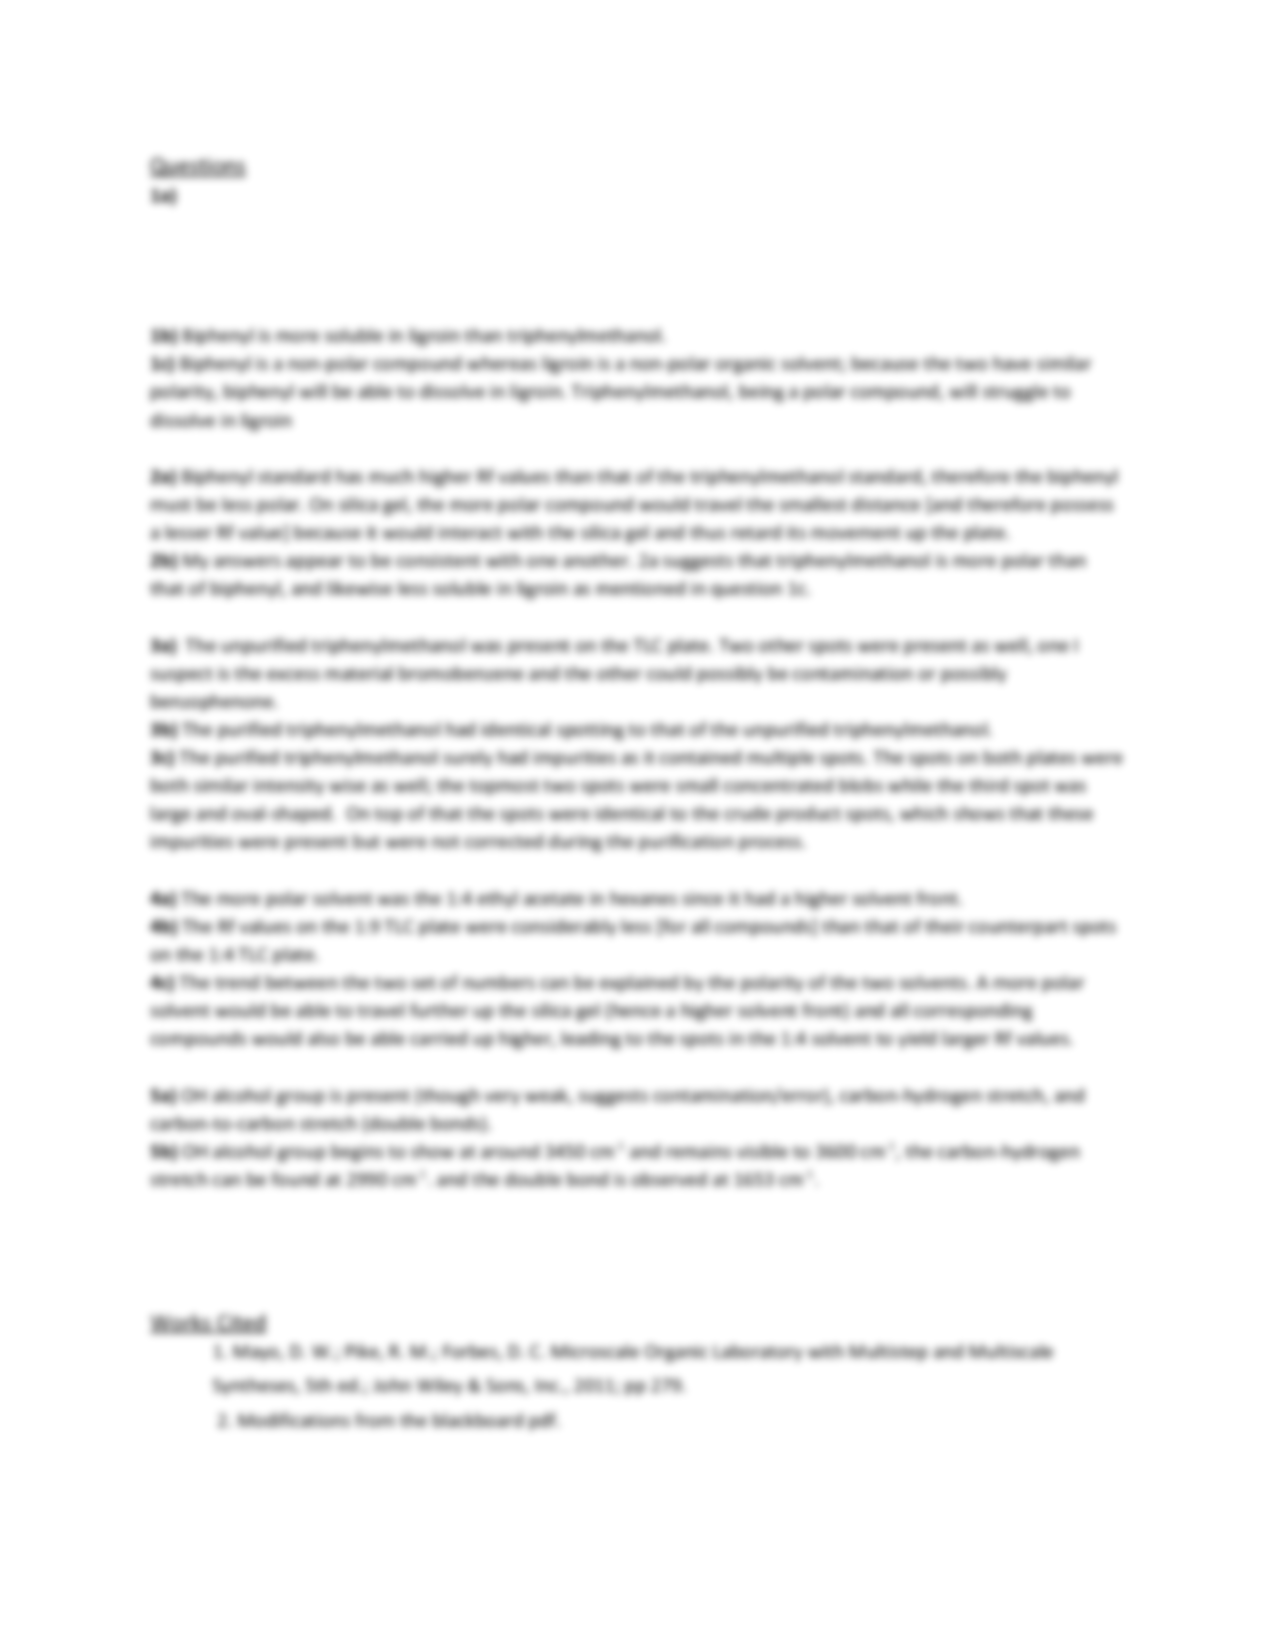 grignard reaction lab report The purpose of this lab was to use benzophenone and bromobenzene to  synthesize triphenylmethanol this was done via a grignard reaction.